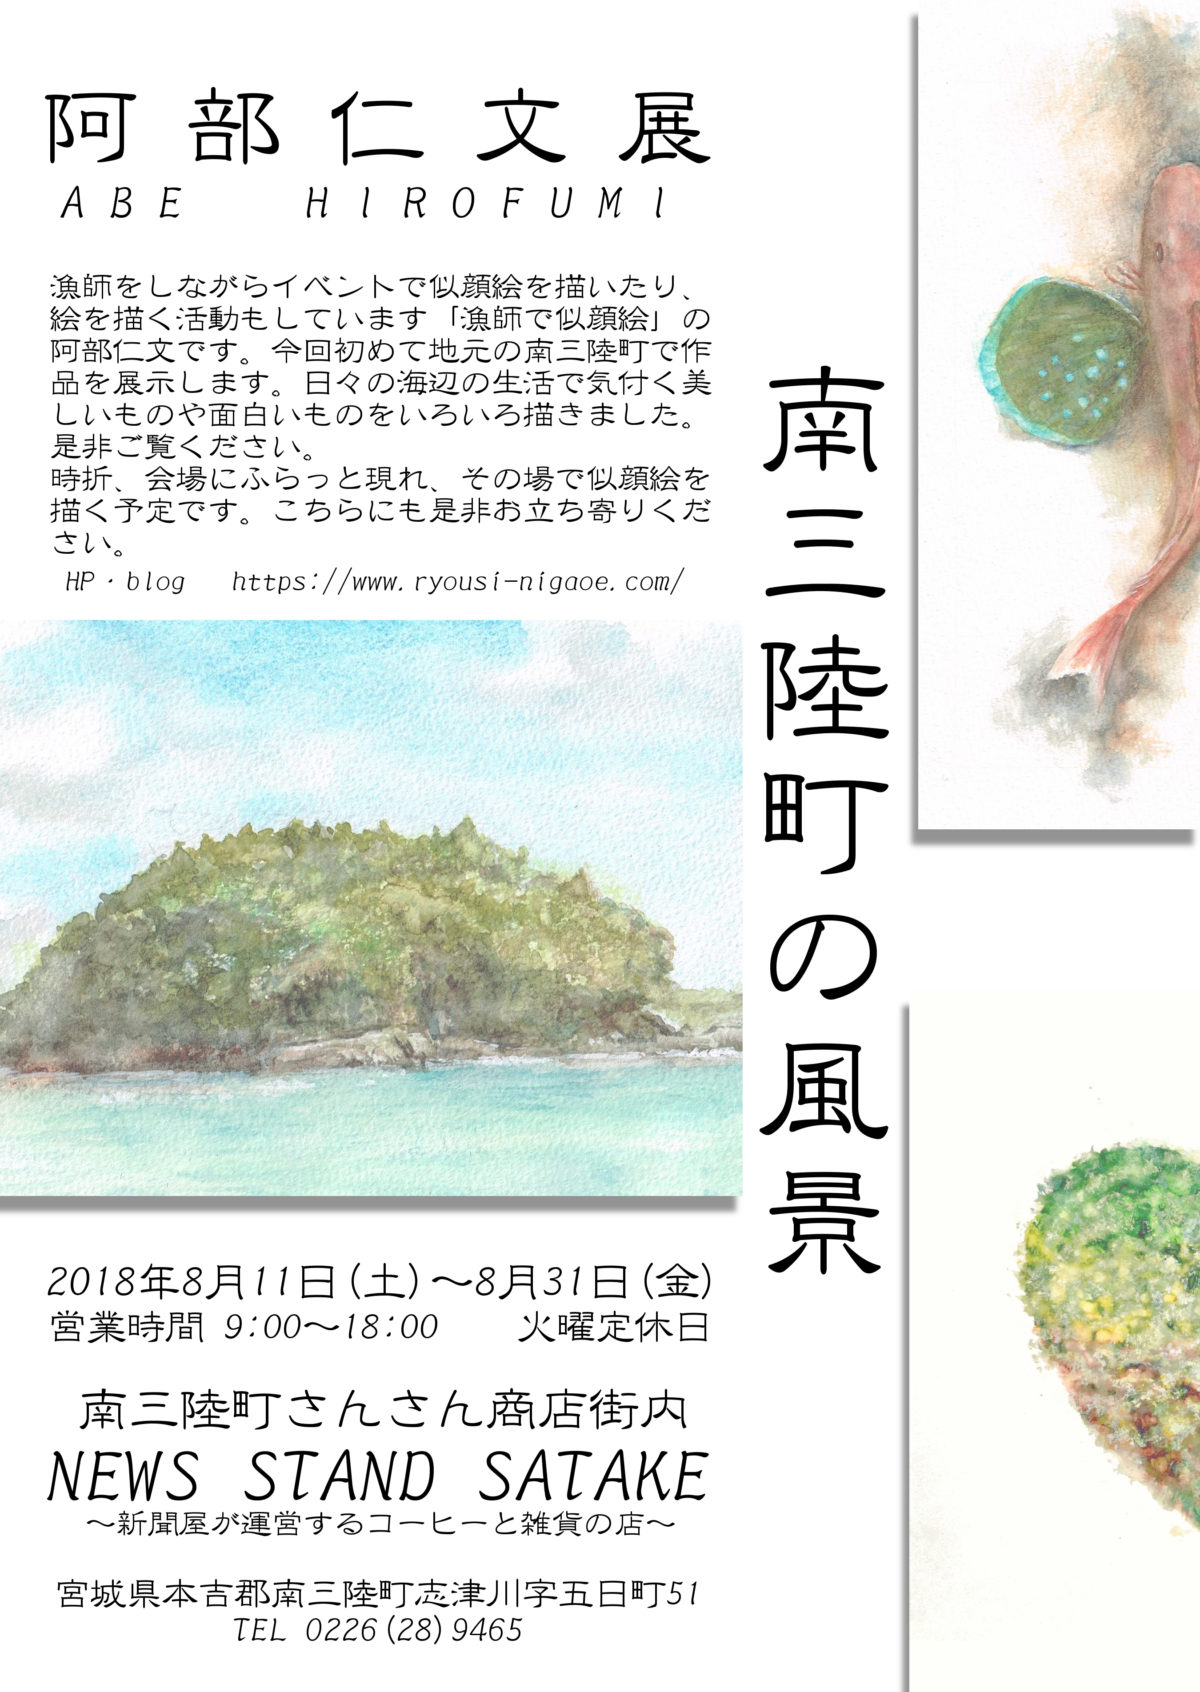 "NEWS STAND SATAKEにて8月11日(土)~8月31日(金)まで""阿部仁文展""『南三陸町の風景』を開催!"